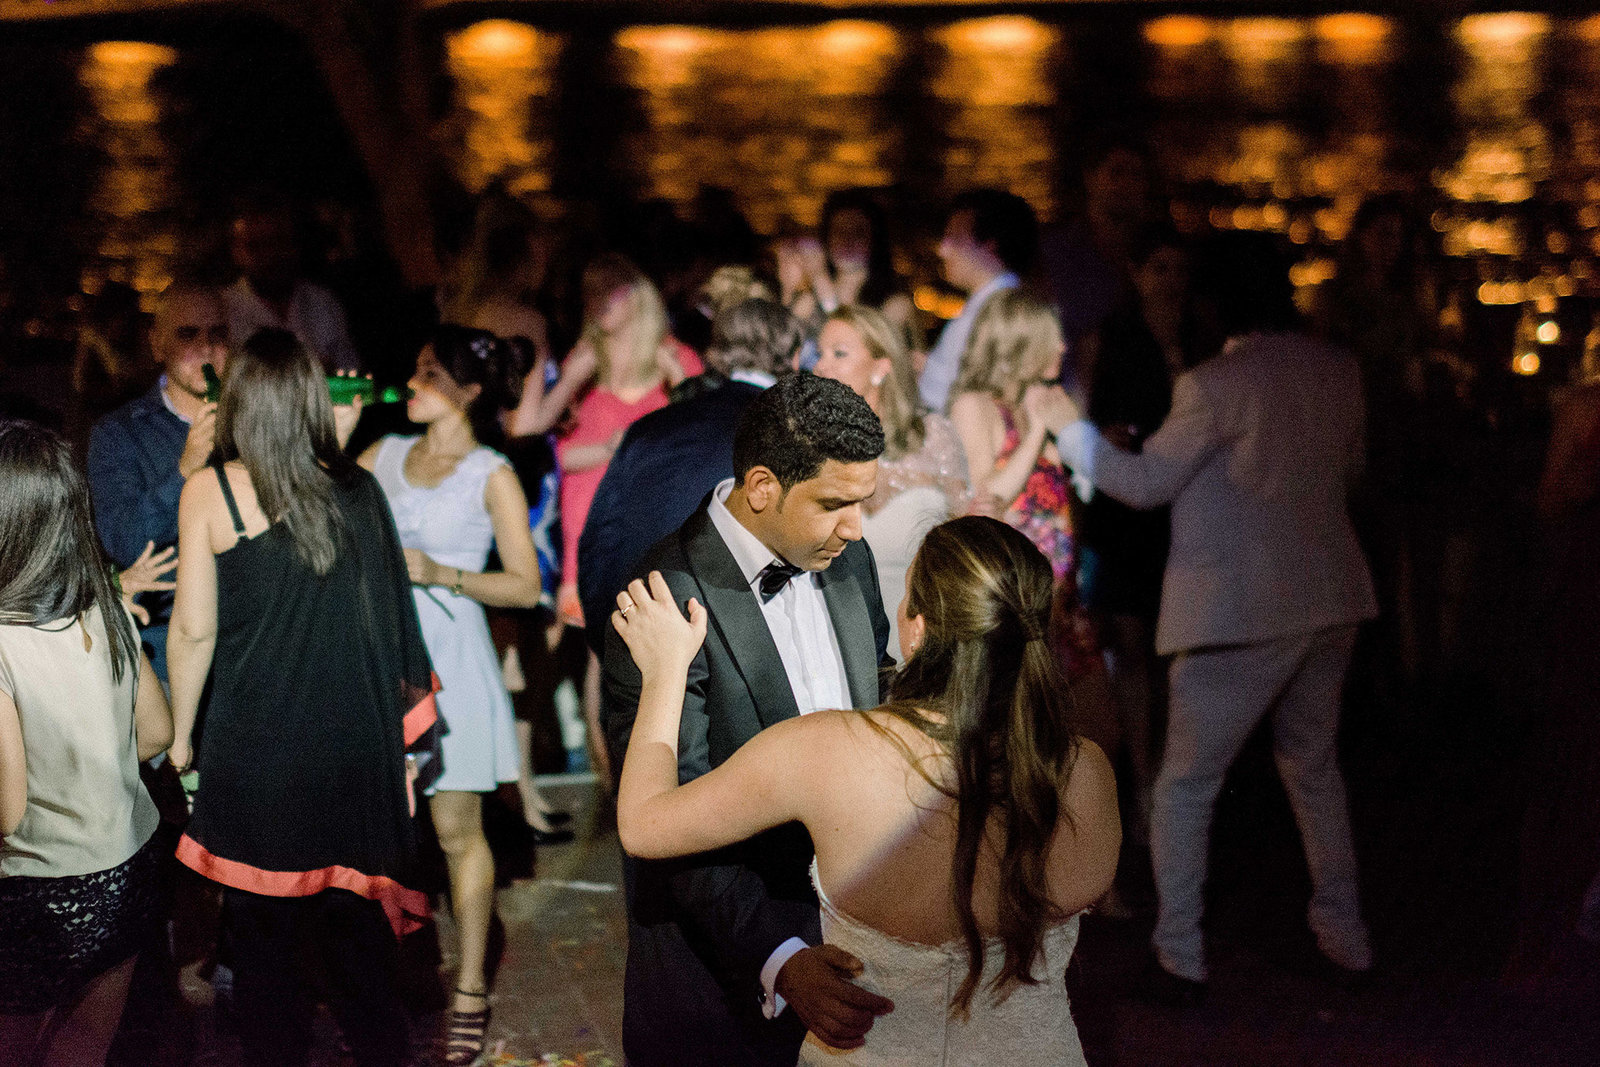 20150328-Pura-Soul-Photo-Cuba-Wedding-111